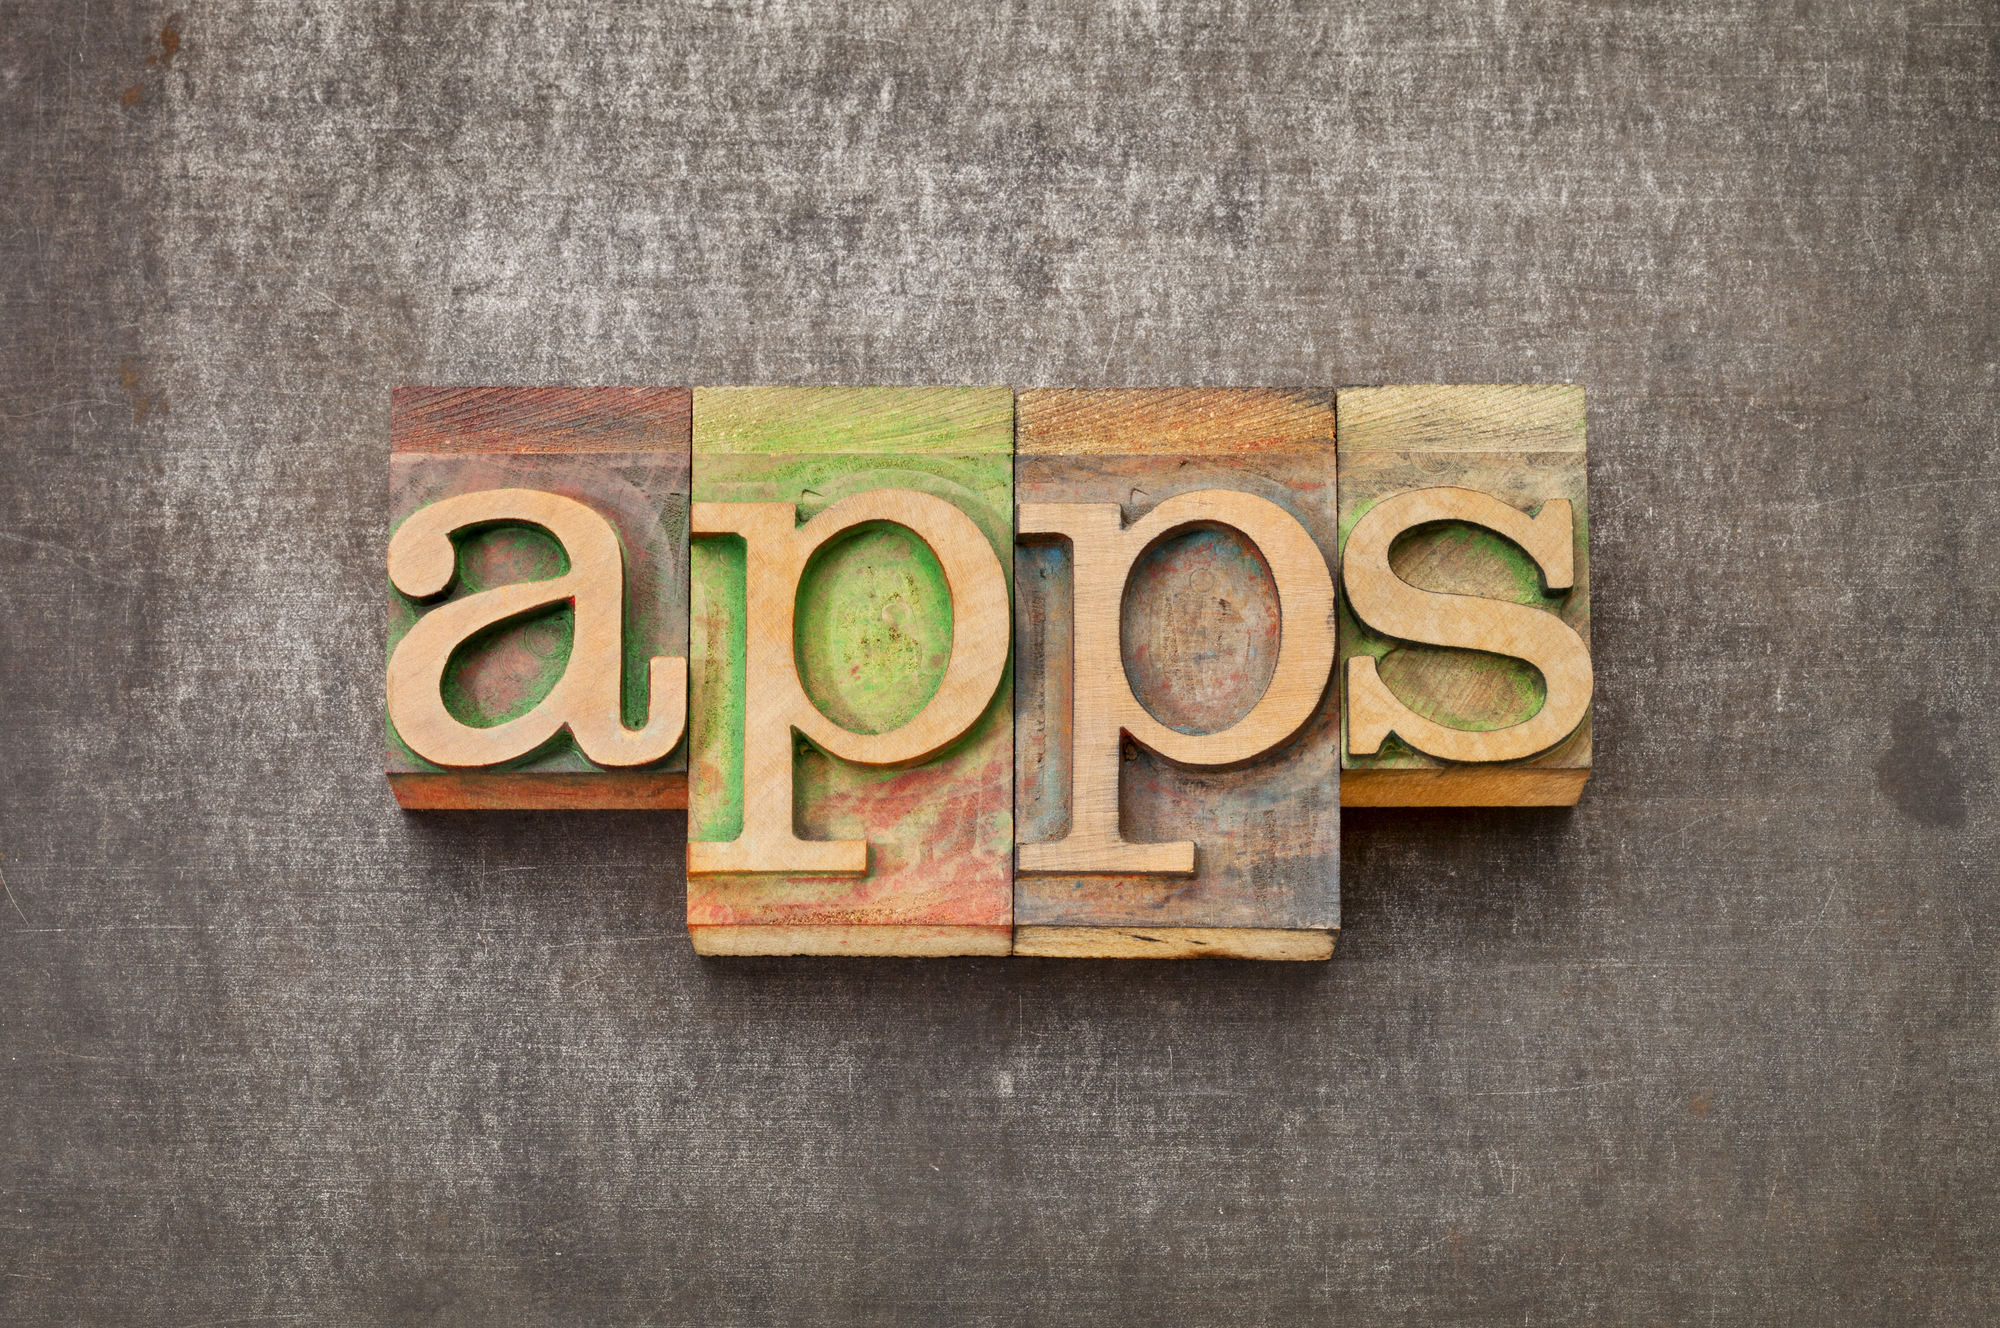 Multi-Family Property Mobile Apps in Wood Letters On Background